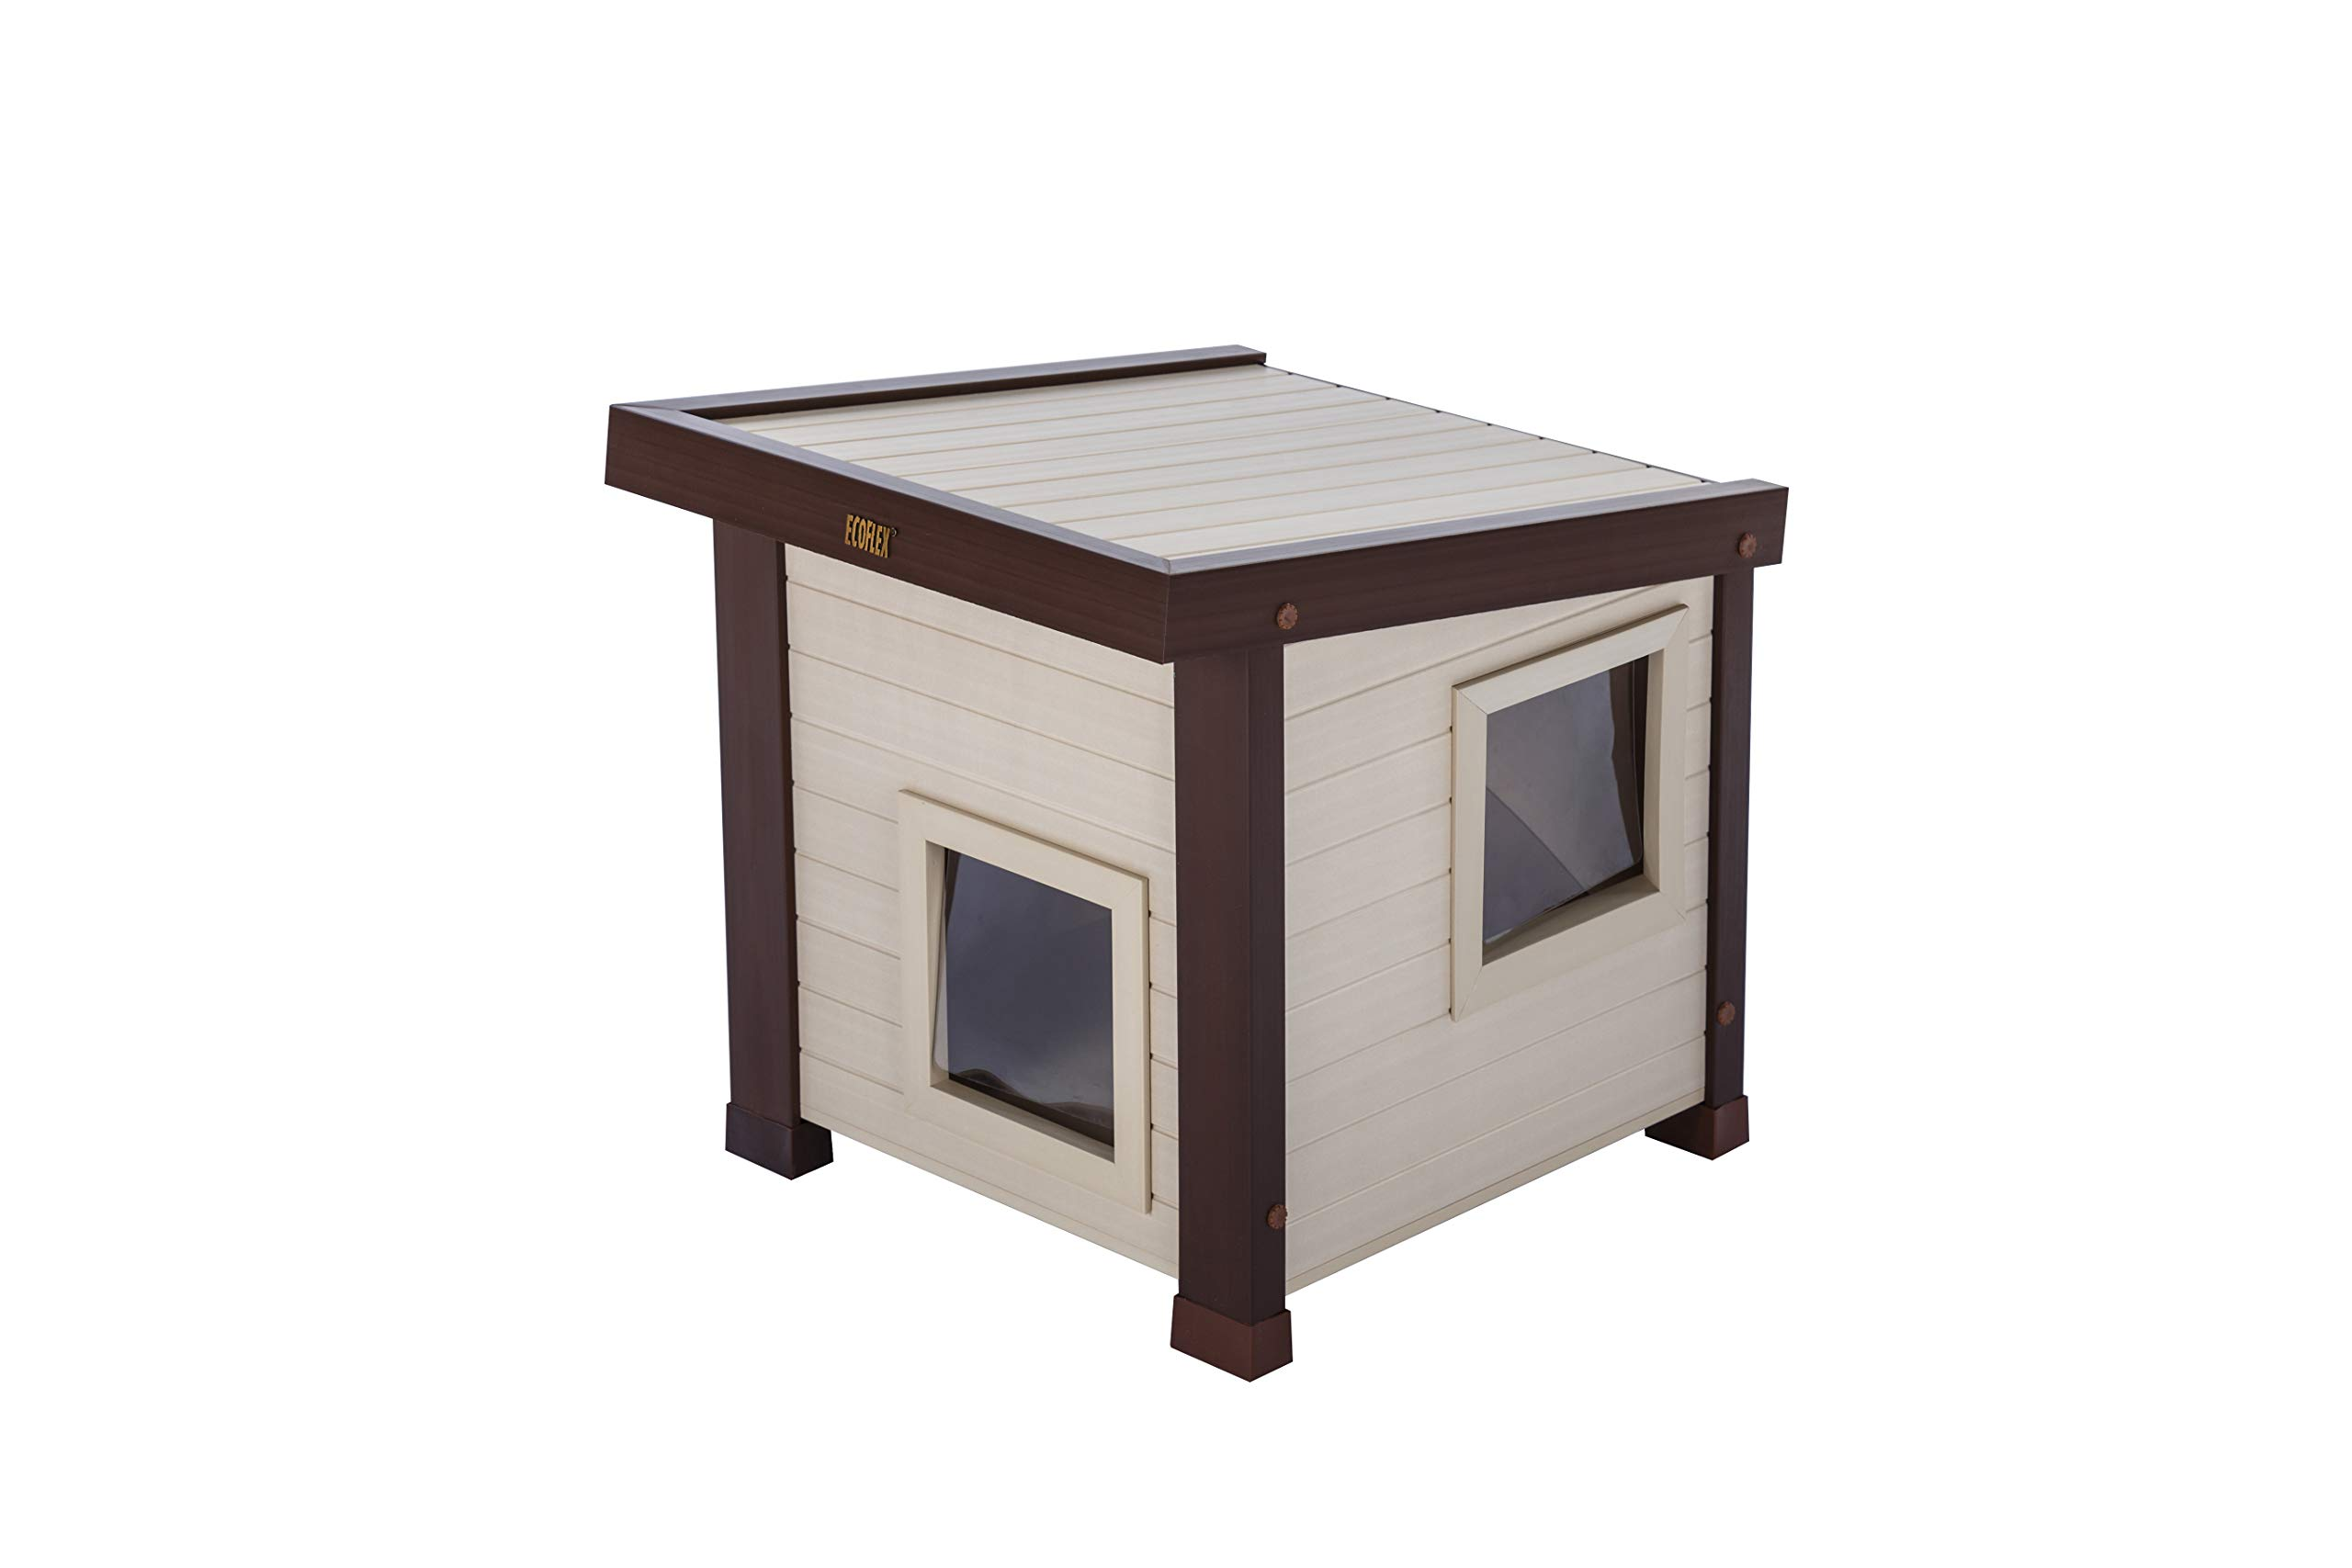 ecoFLEX Albany Outdoor Feral Cat House by New Age Pet